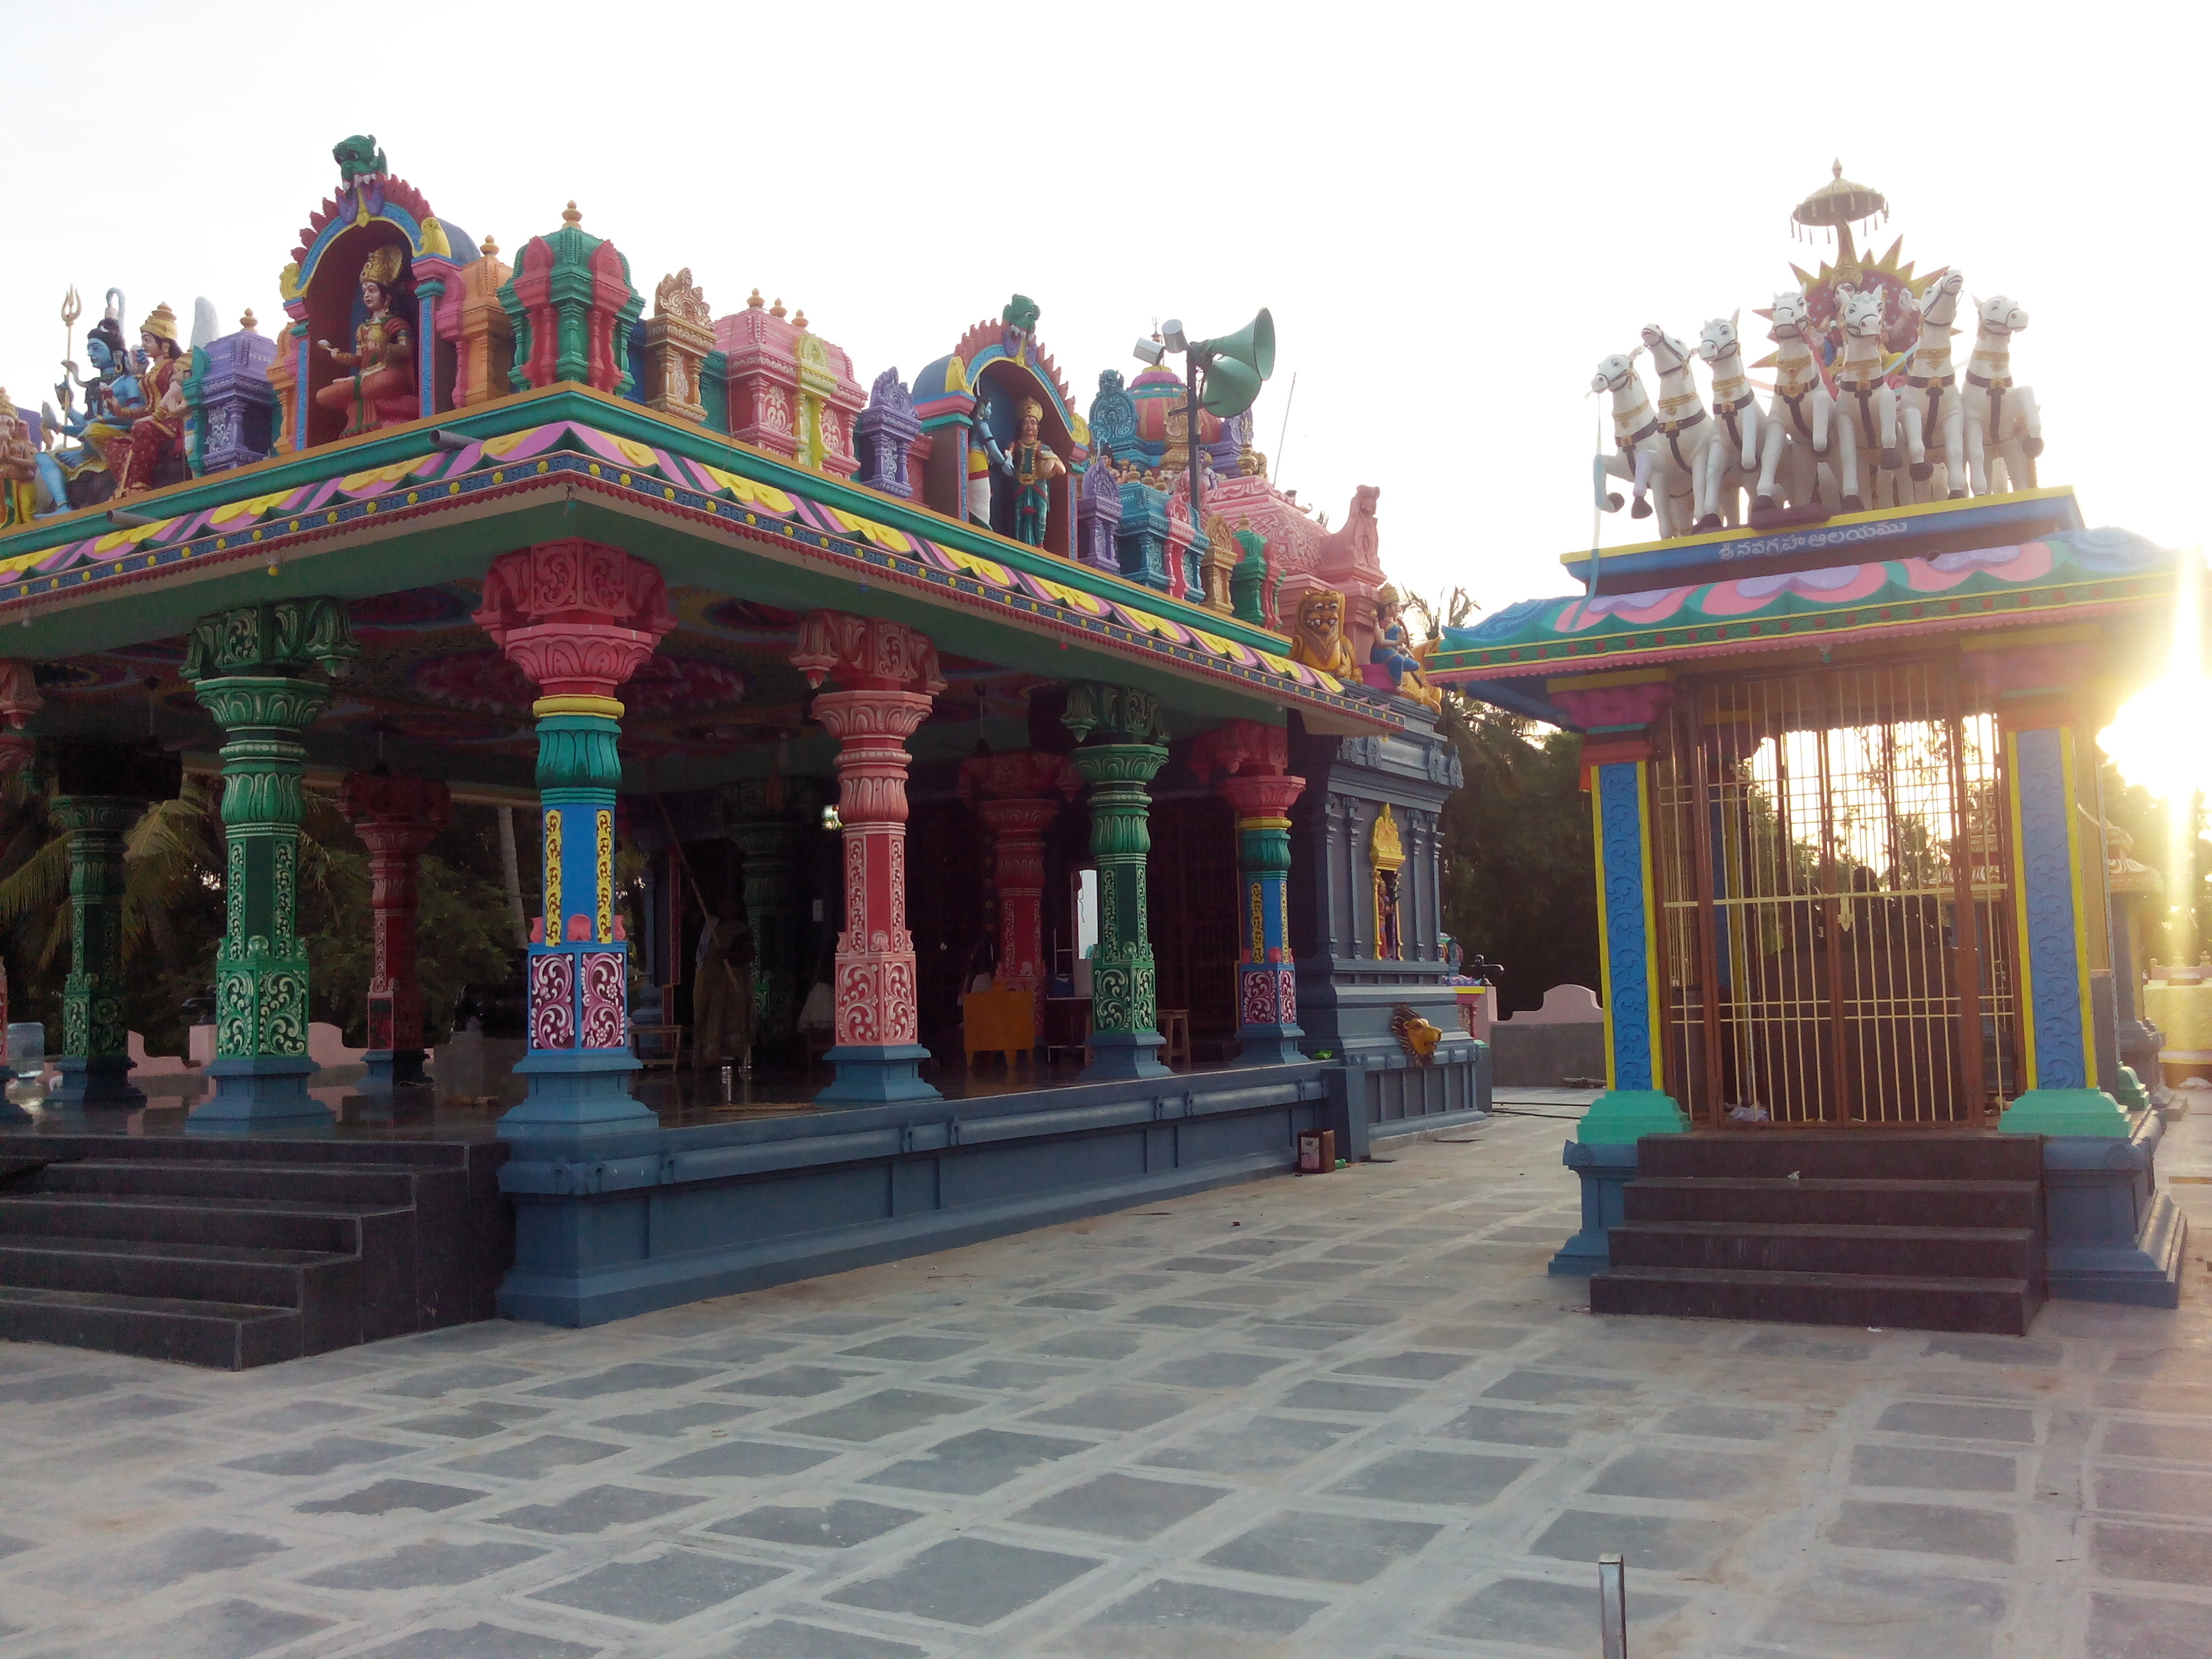 Putlacheruvu Siva Temple